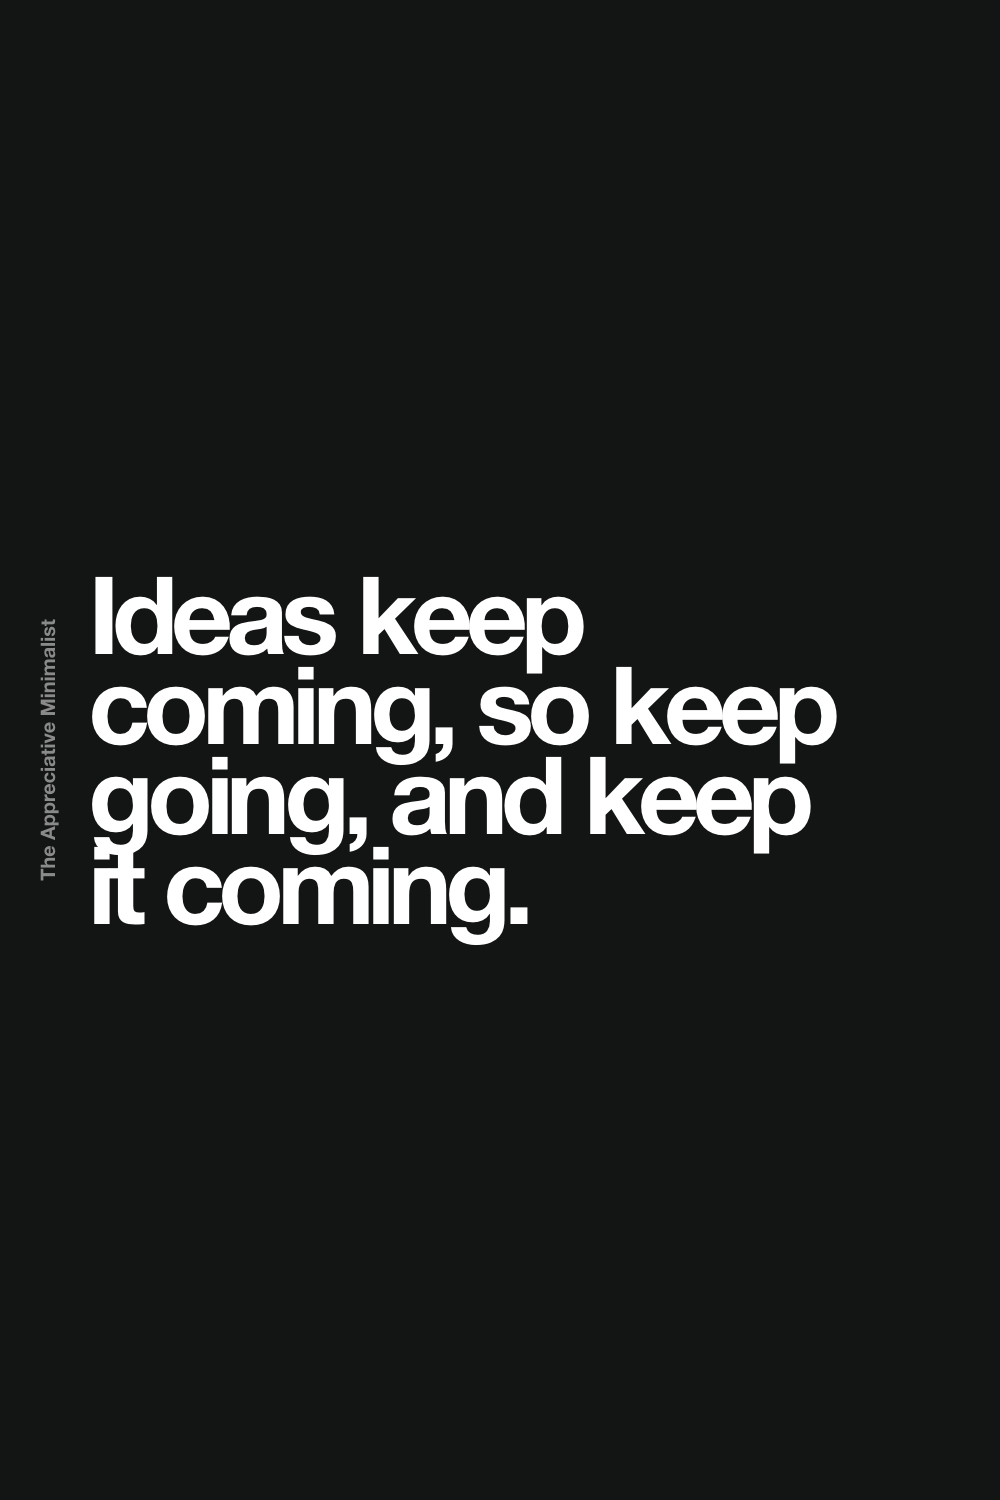 Ideas keep coming, so keep going, and keep it coming.